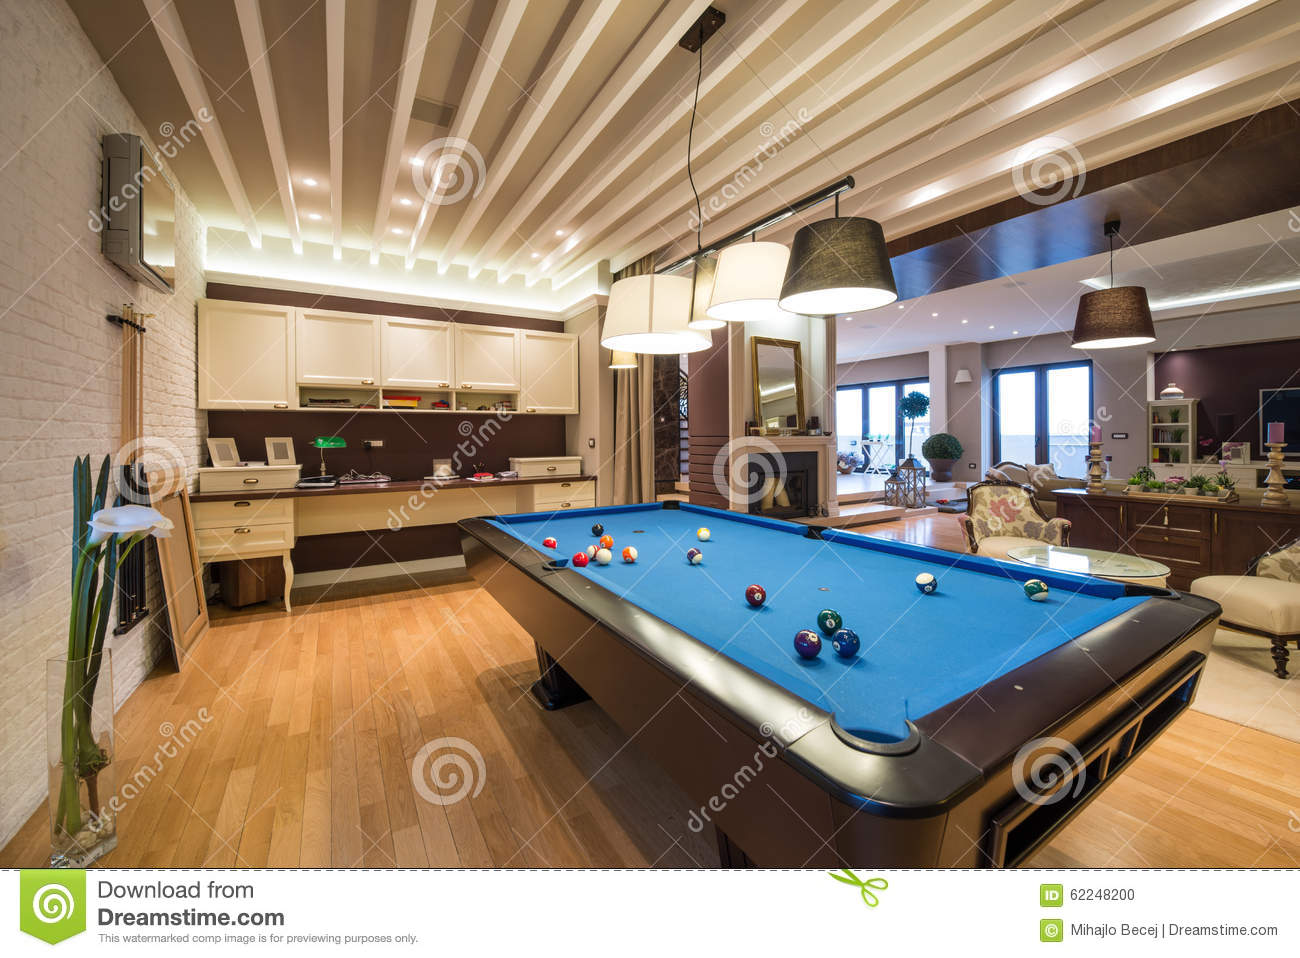 Int rieur d 39 un salon de luxe avec la table de billard photo stock image du lumi res meubles Prix d un billard table